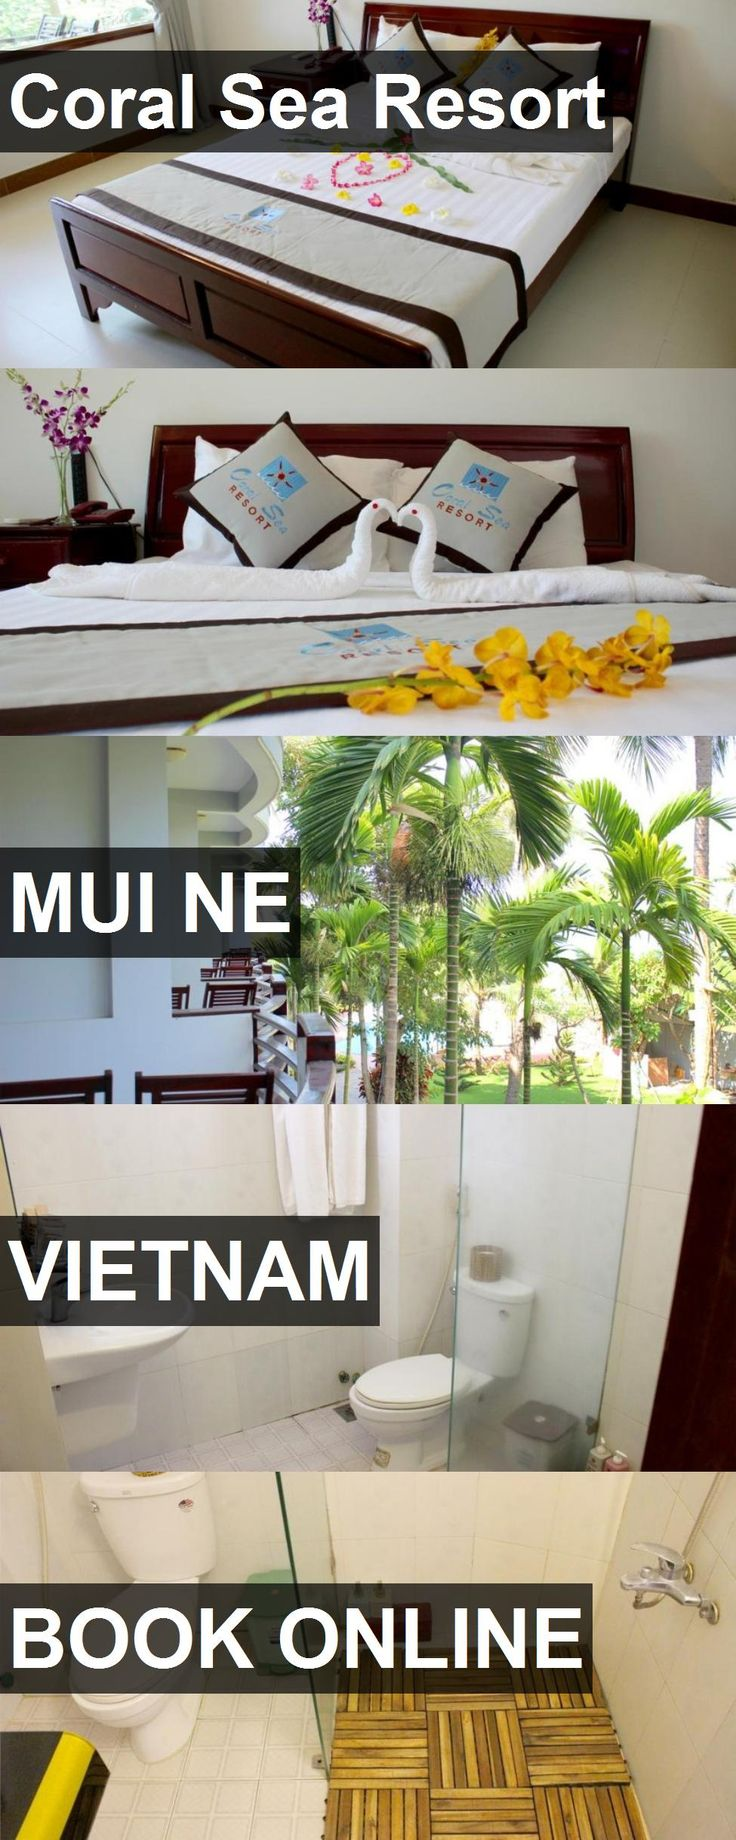 Hotel Coral Sea Resort in Mui Ne, Vietnam. For more information, photos, reviews and best prices please follow the link. #Vietnam #MuiNe #travel #vacation #hotel